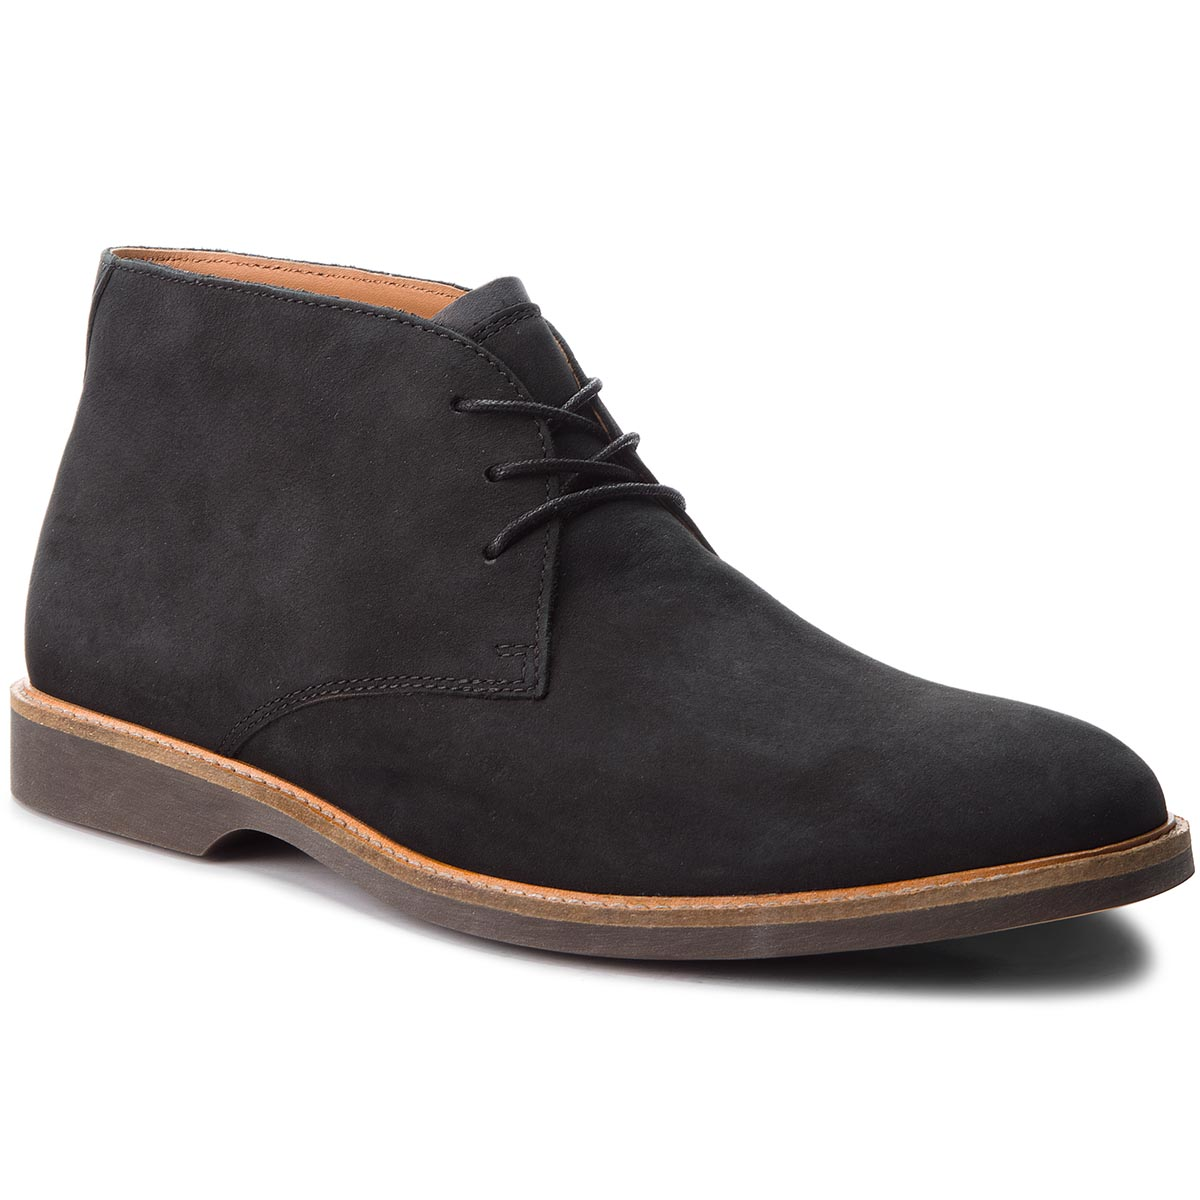 Ghete CLARKS - Atticus Limit 261367387 Black Nubuck